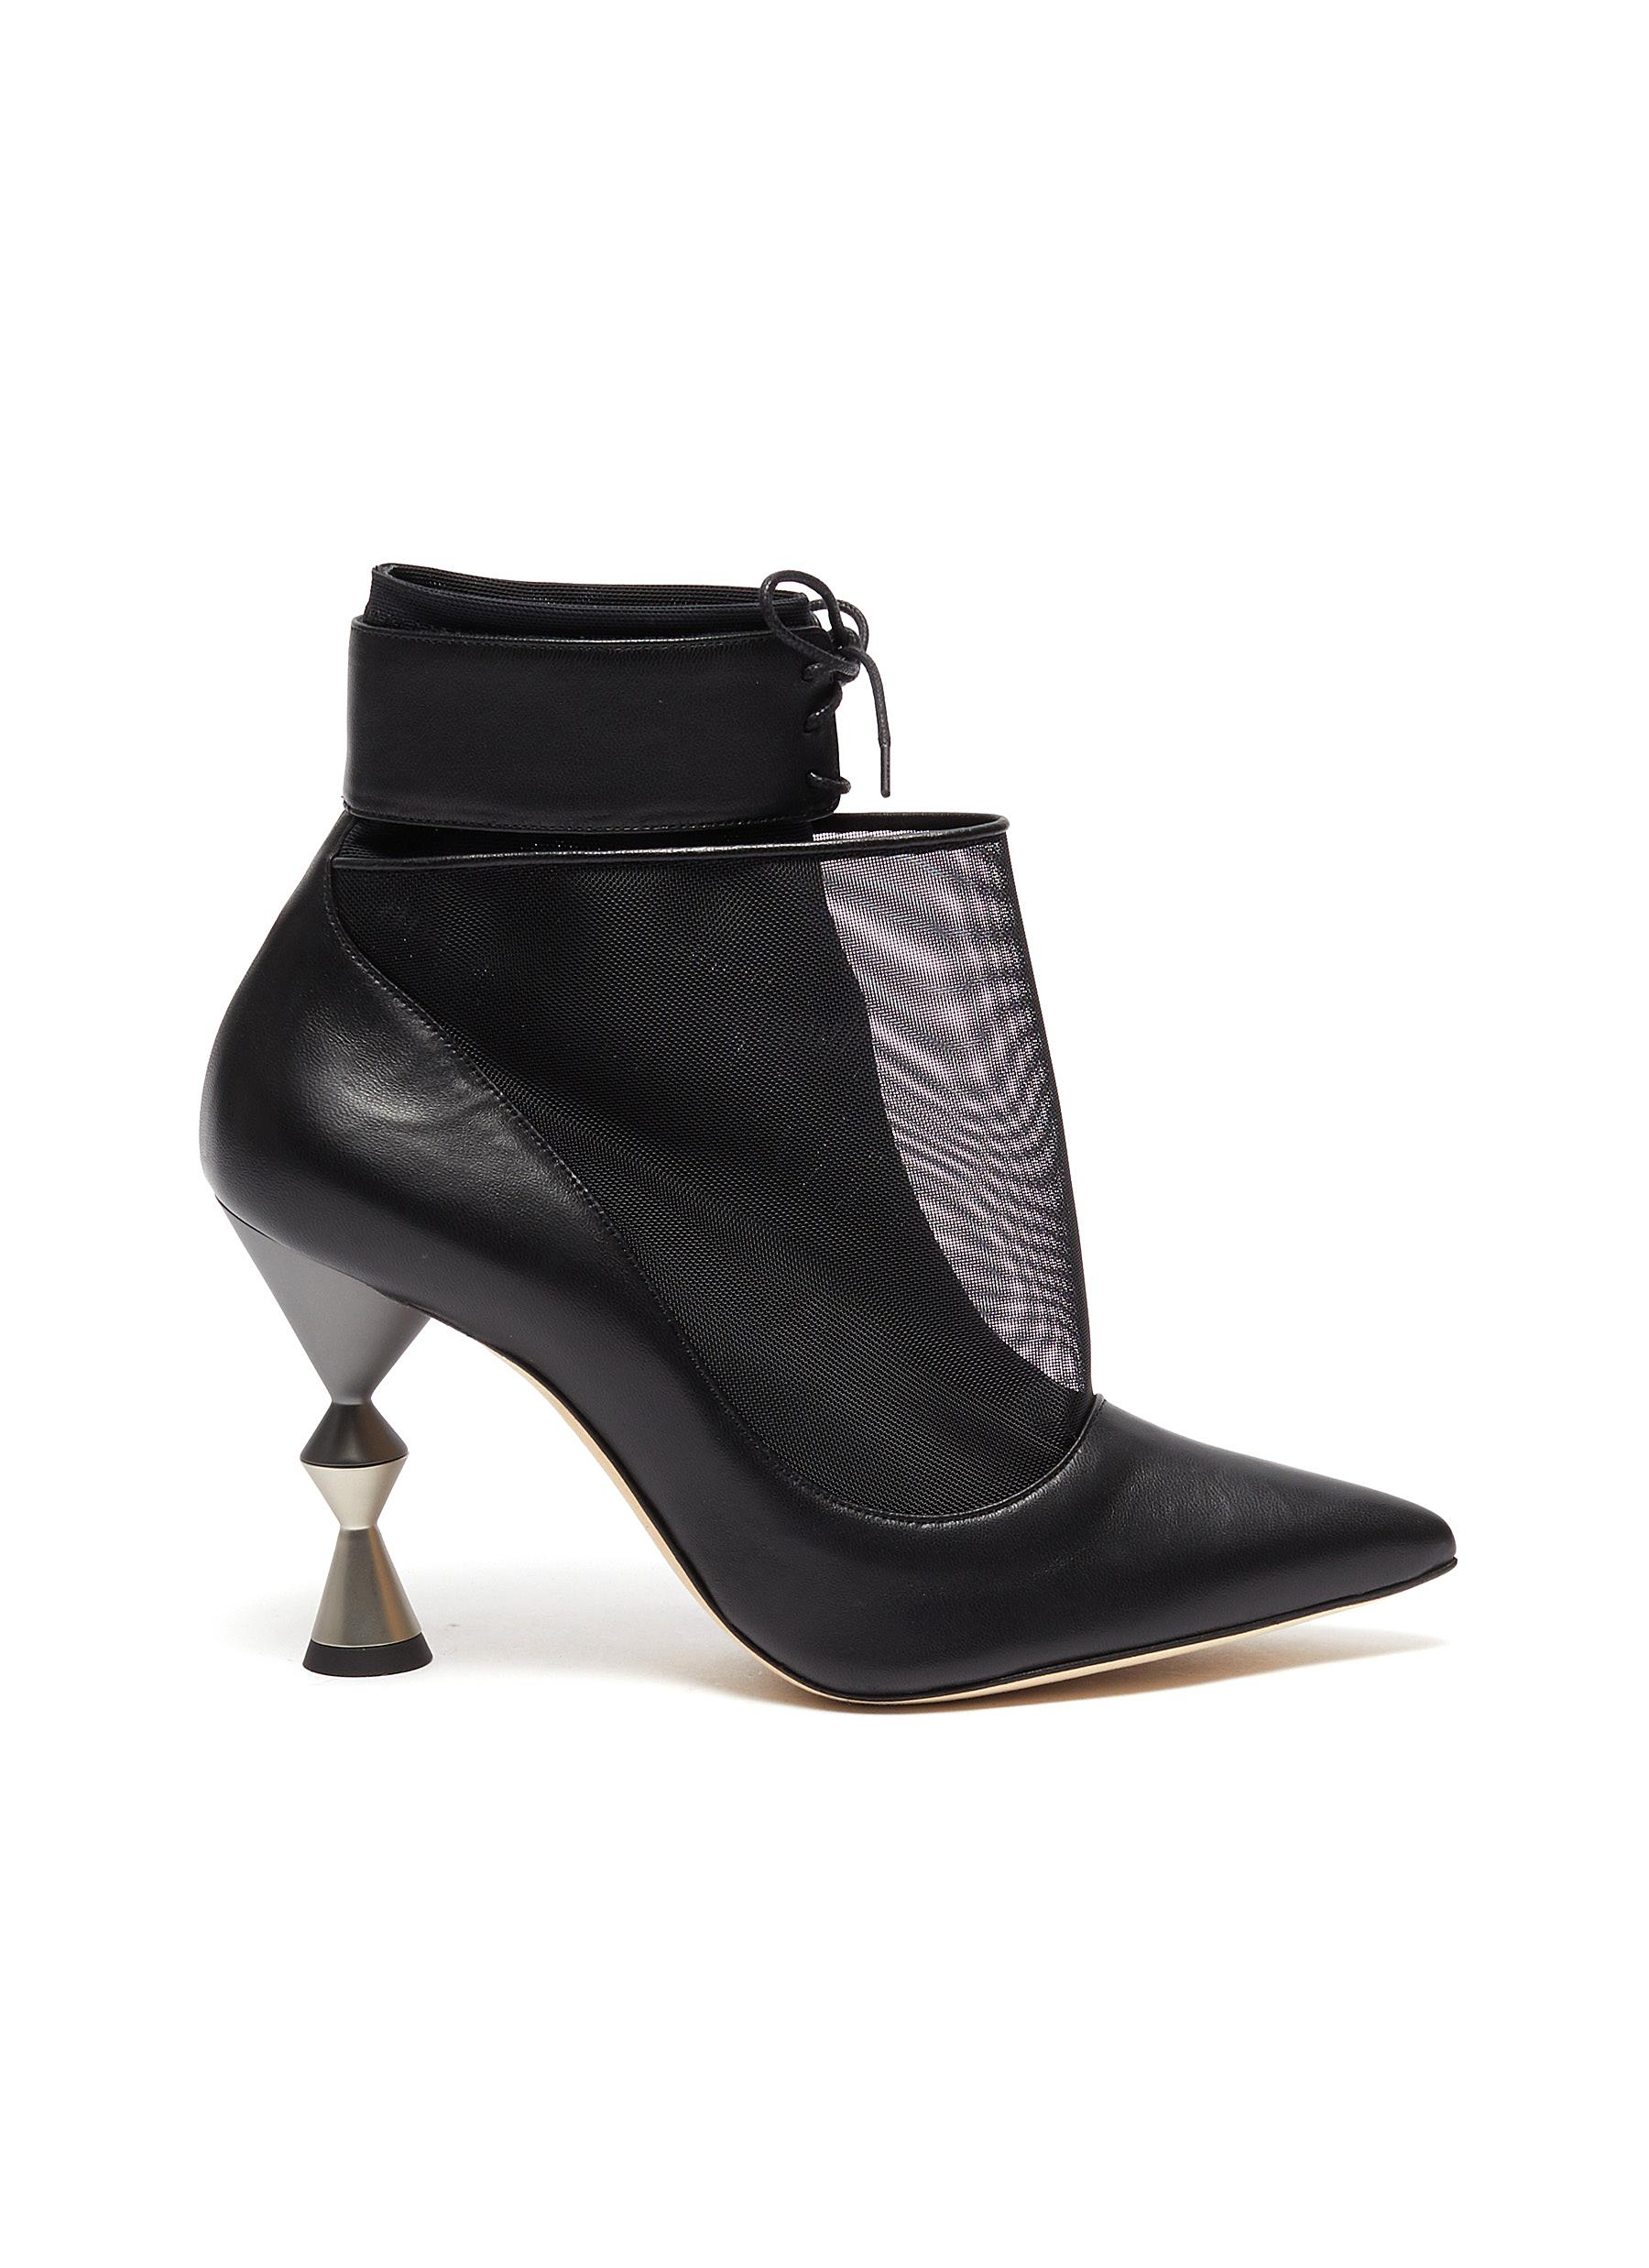 Manolo Blahnik Boots Lacus leather mesh ankle boots